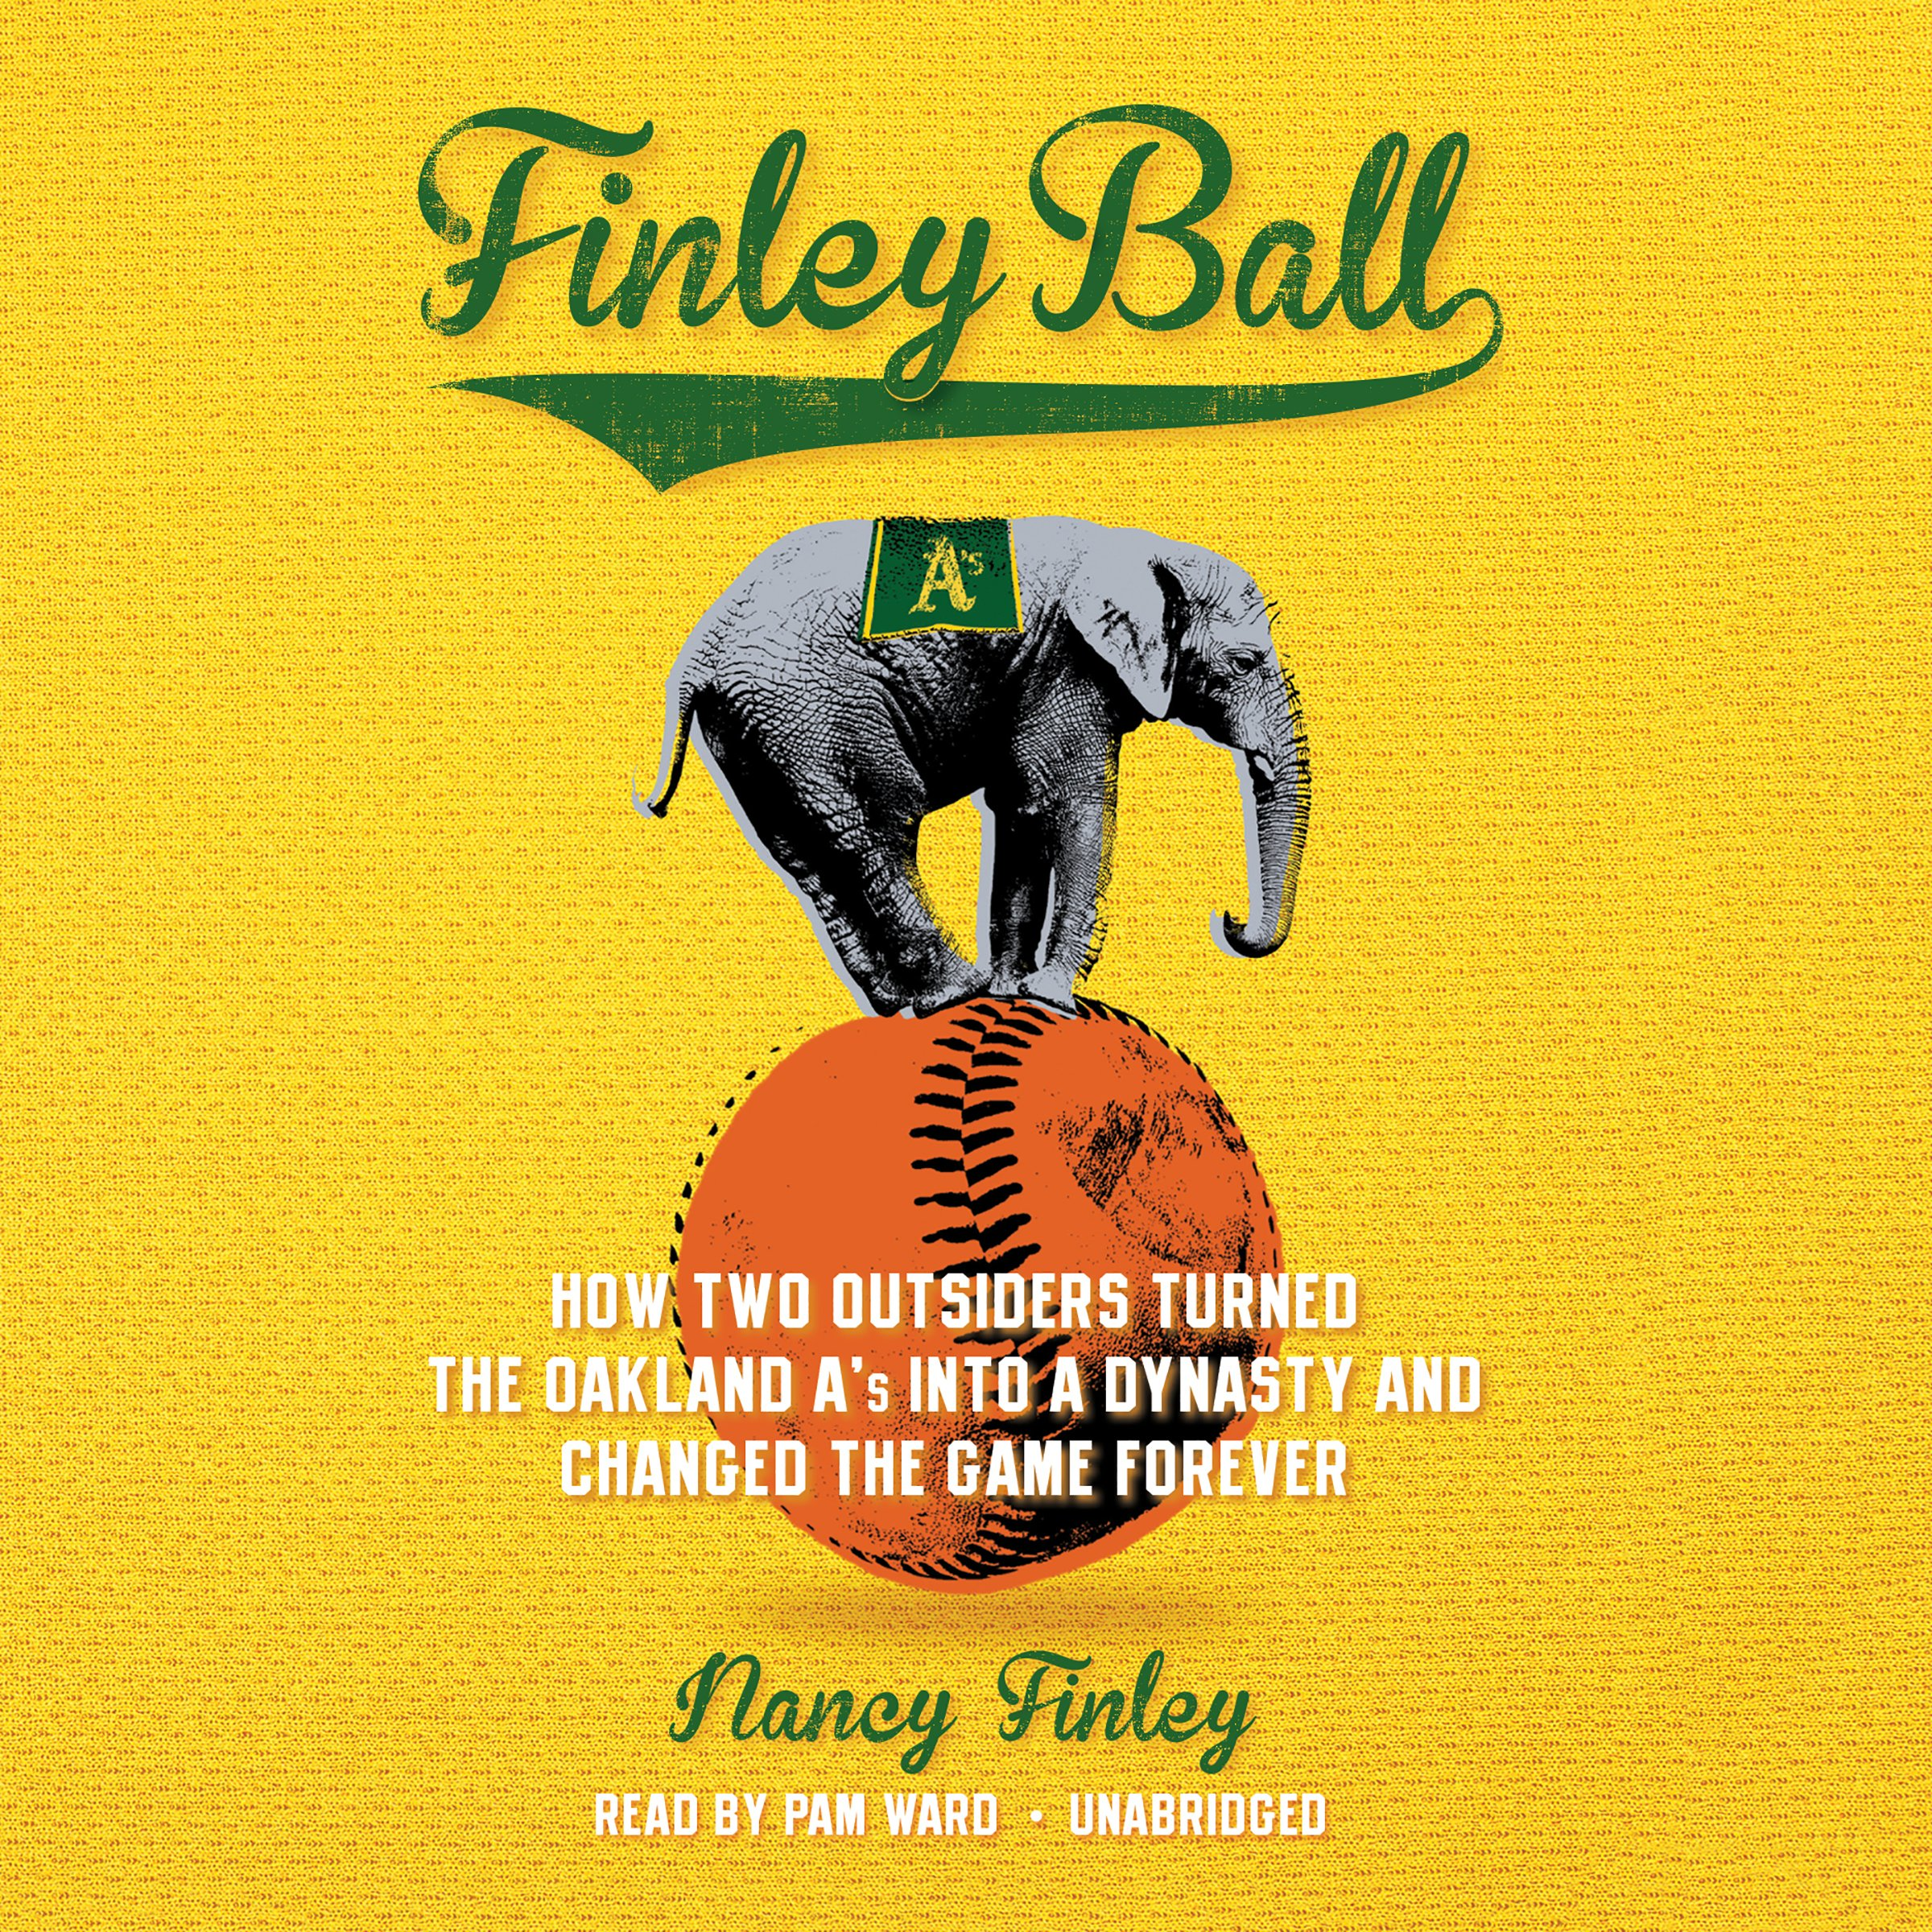 Finley Ball: How Two Outsiders Turned the Oakland A's into a Dynasty and Changed the Game Forever